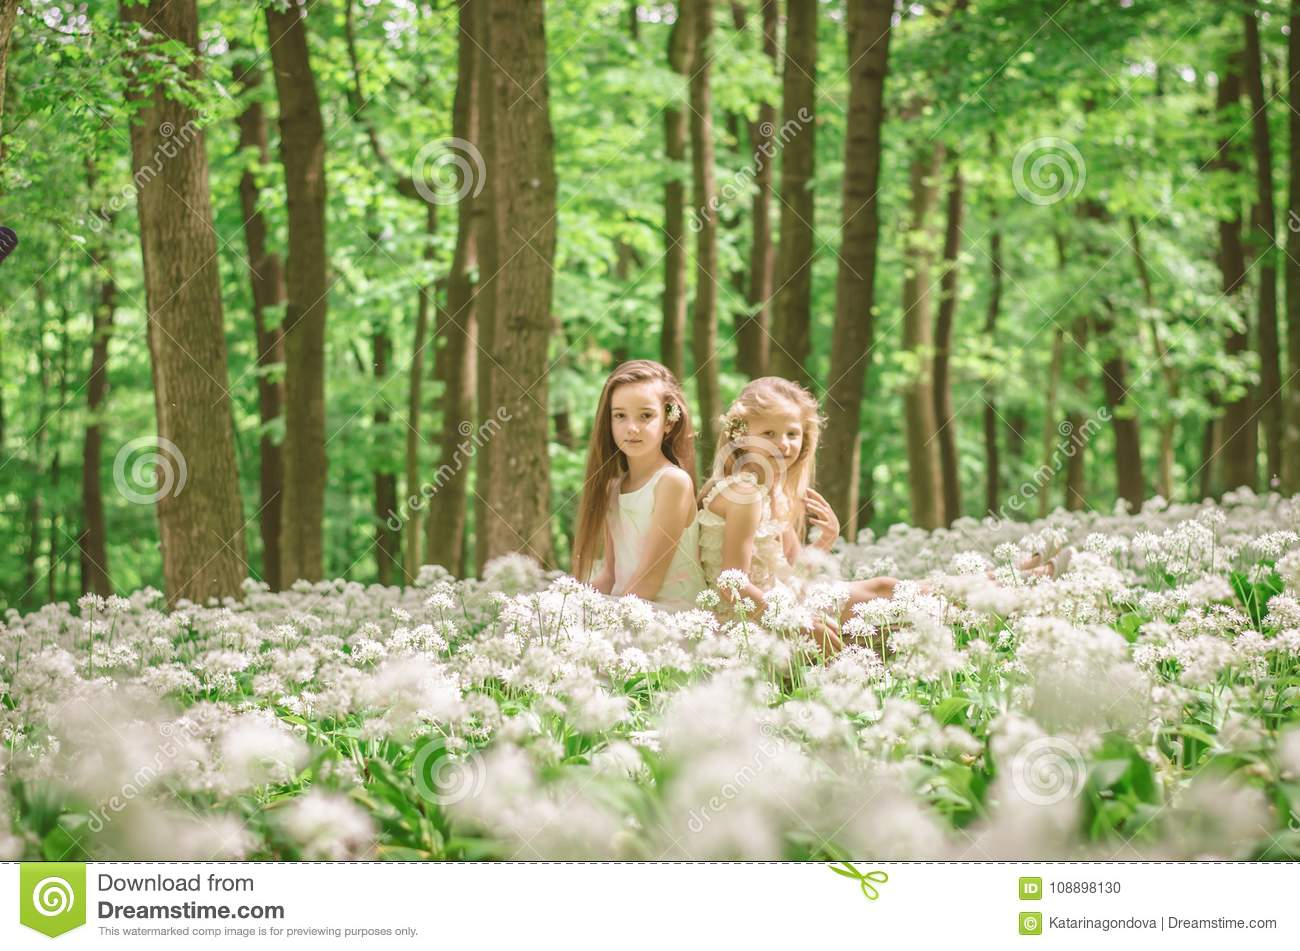 Friend outdoor in blossoming forest